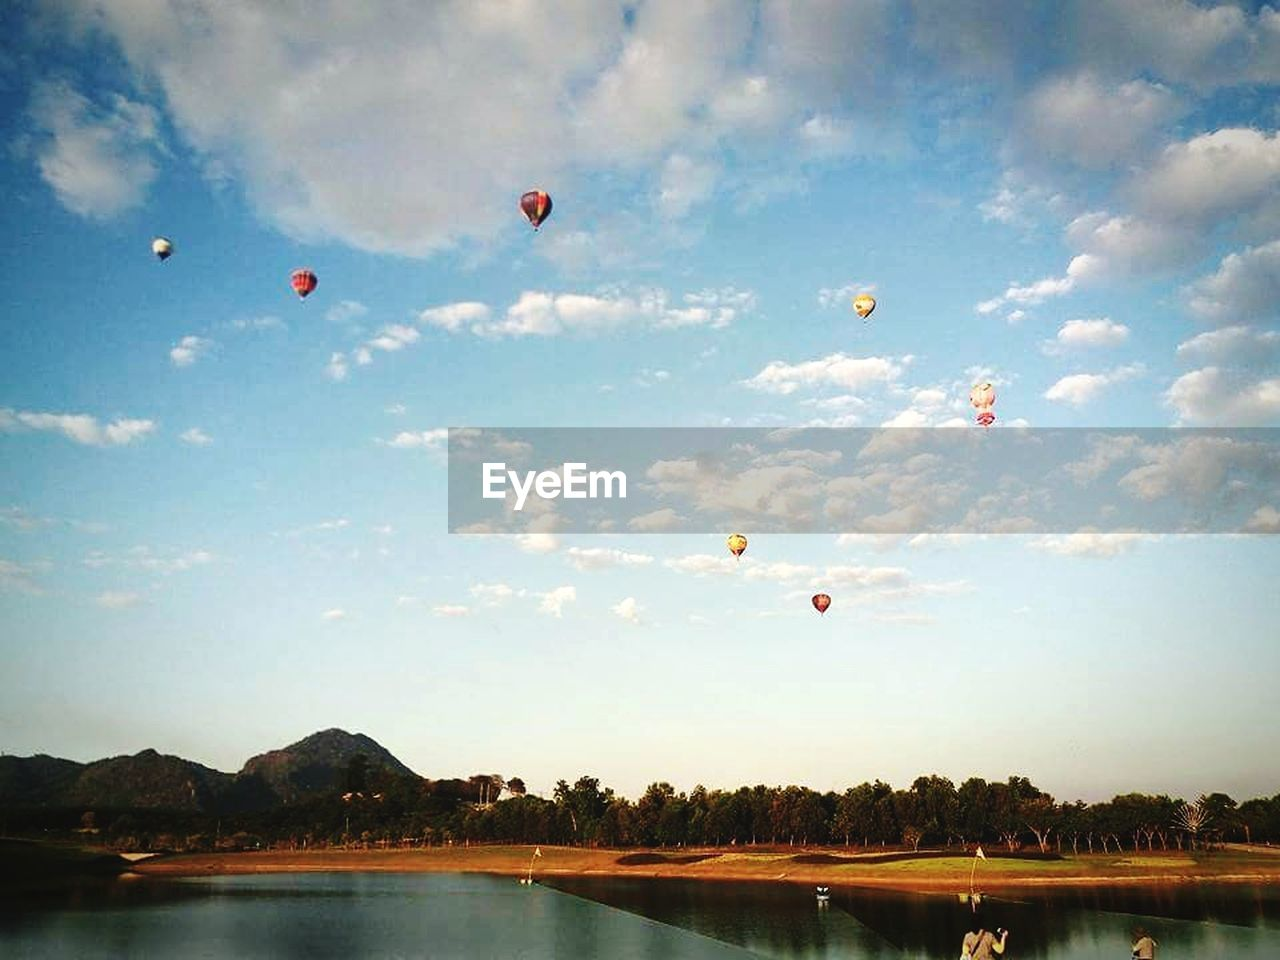 flying, mid-air, sky, adventure, hot air balloon, parachute, leisure activity, outdoors, water, nature, day, scenics, extreme sports, no people, ballooning festival, paragliding